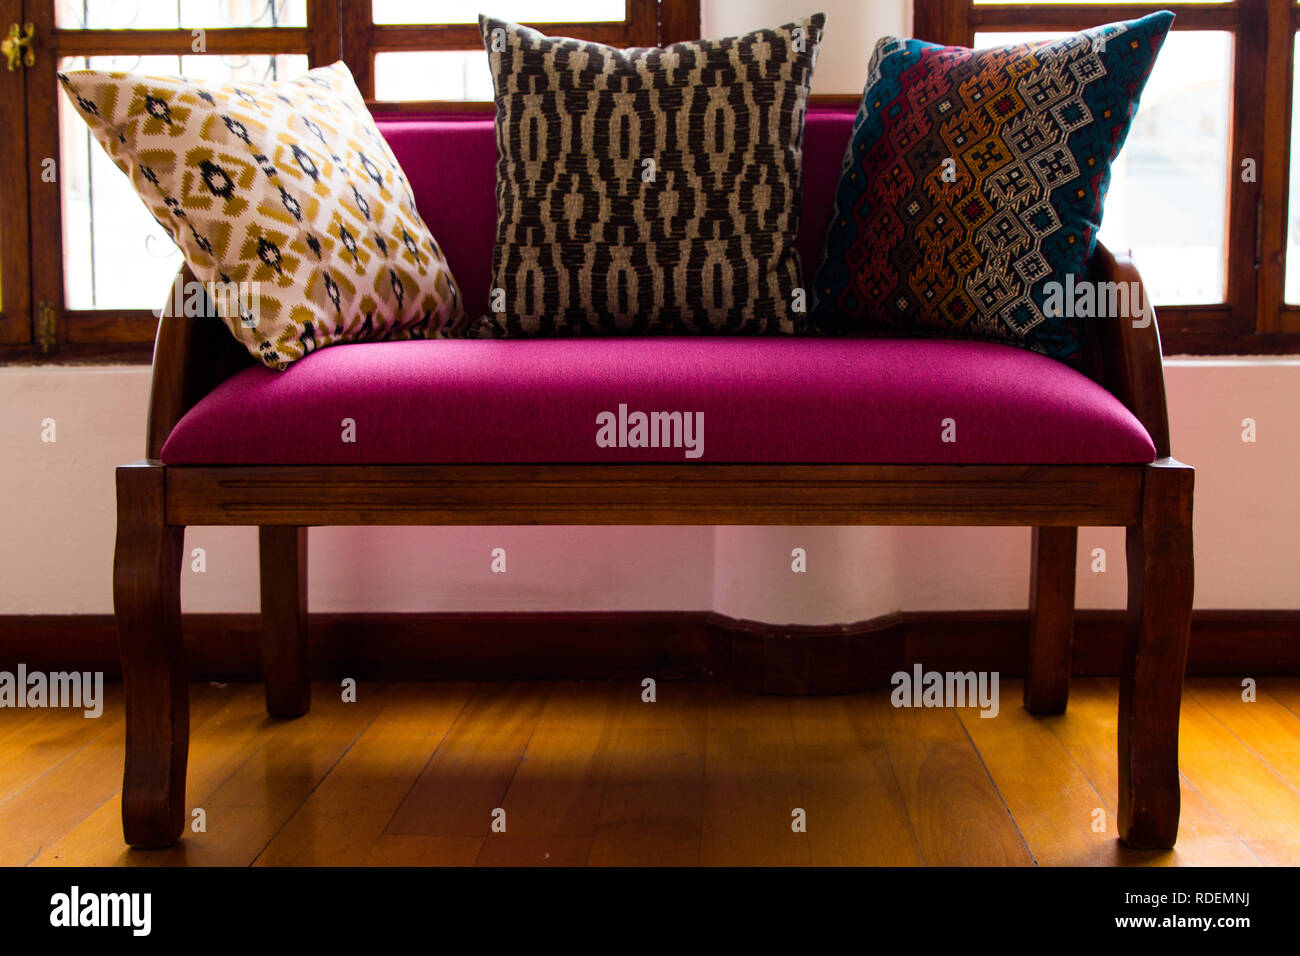 Sofa, pattern, wood, purple, Couch, Kissen Muster Sessel lila kolonial Holz pillow colorful beautiful window Stock Photo